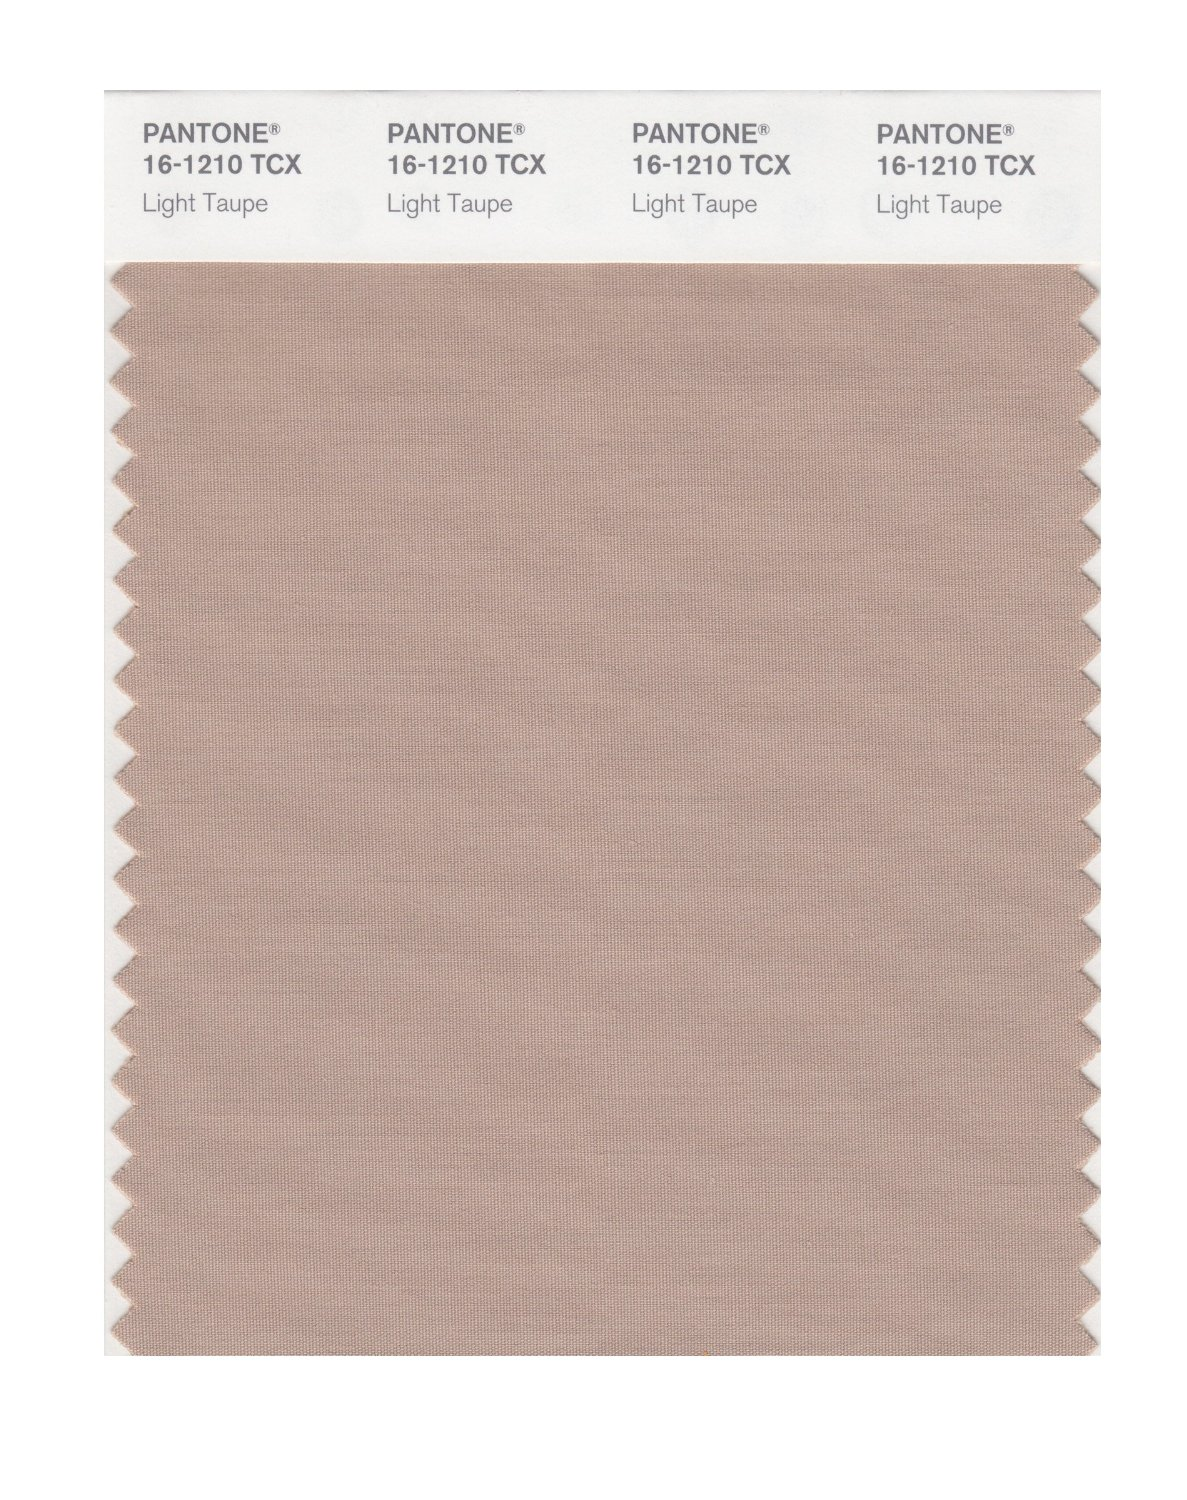 Pantone Smart Swatch 16-1210 Light Taupe